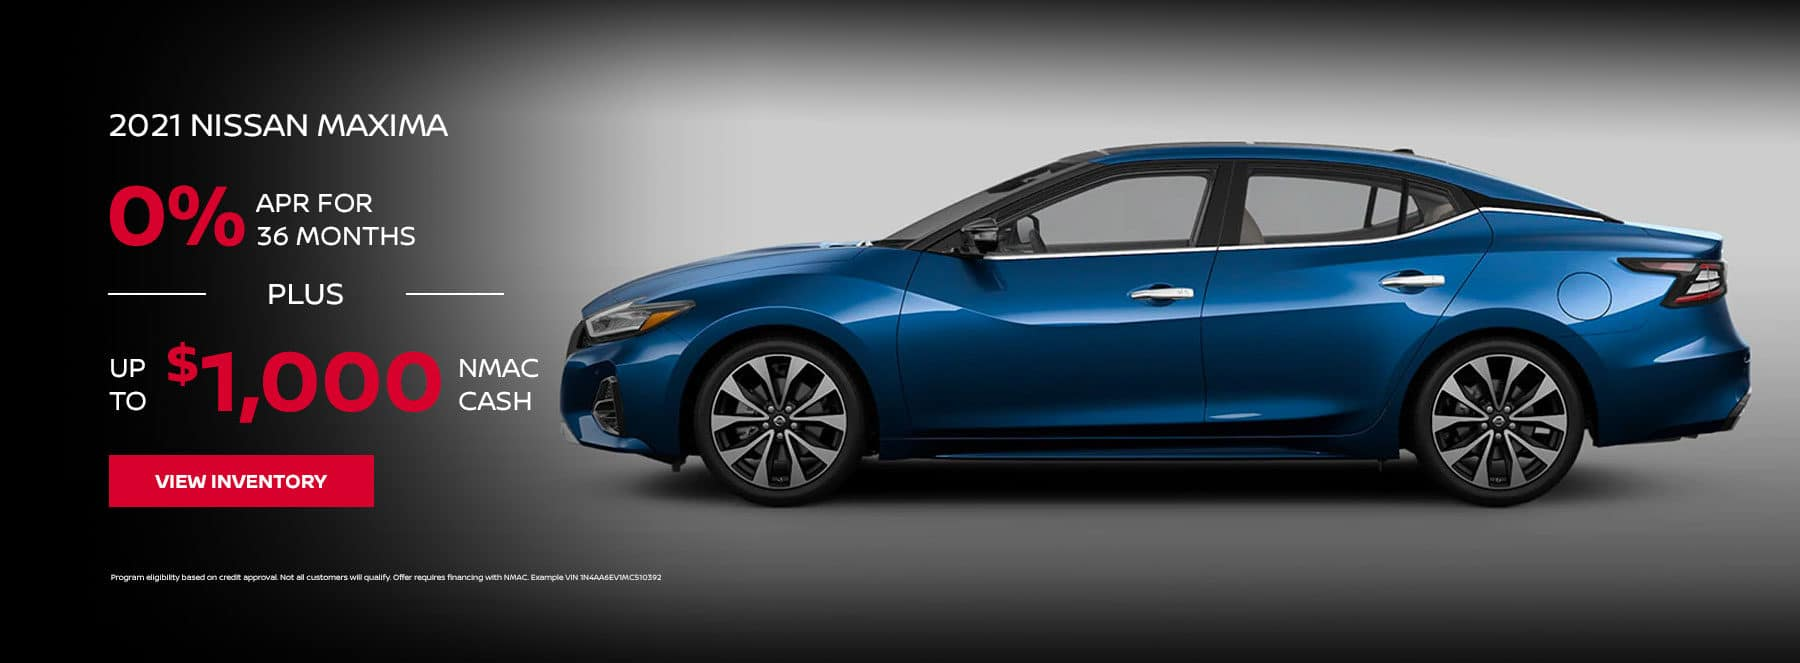 2021 NISSAN MAXIMA, 0% APR For 36 Months + Up to $1,000 NMAC Cash